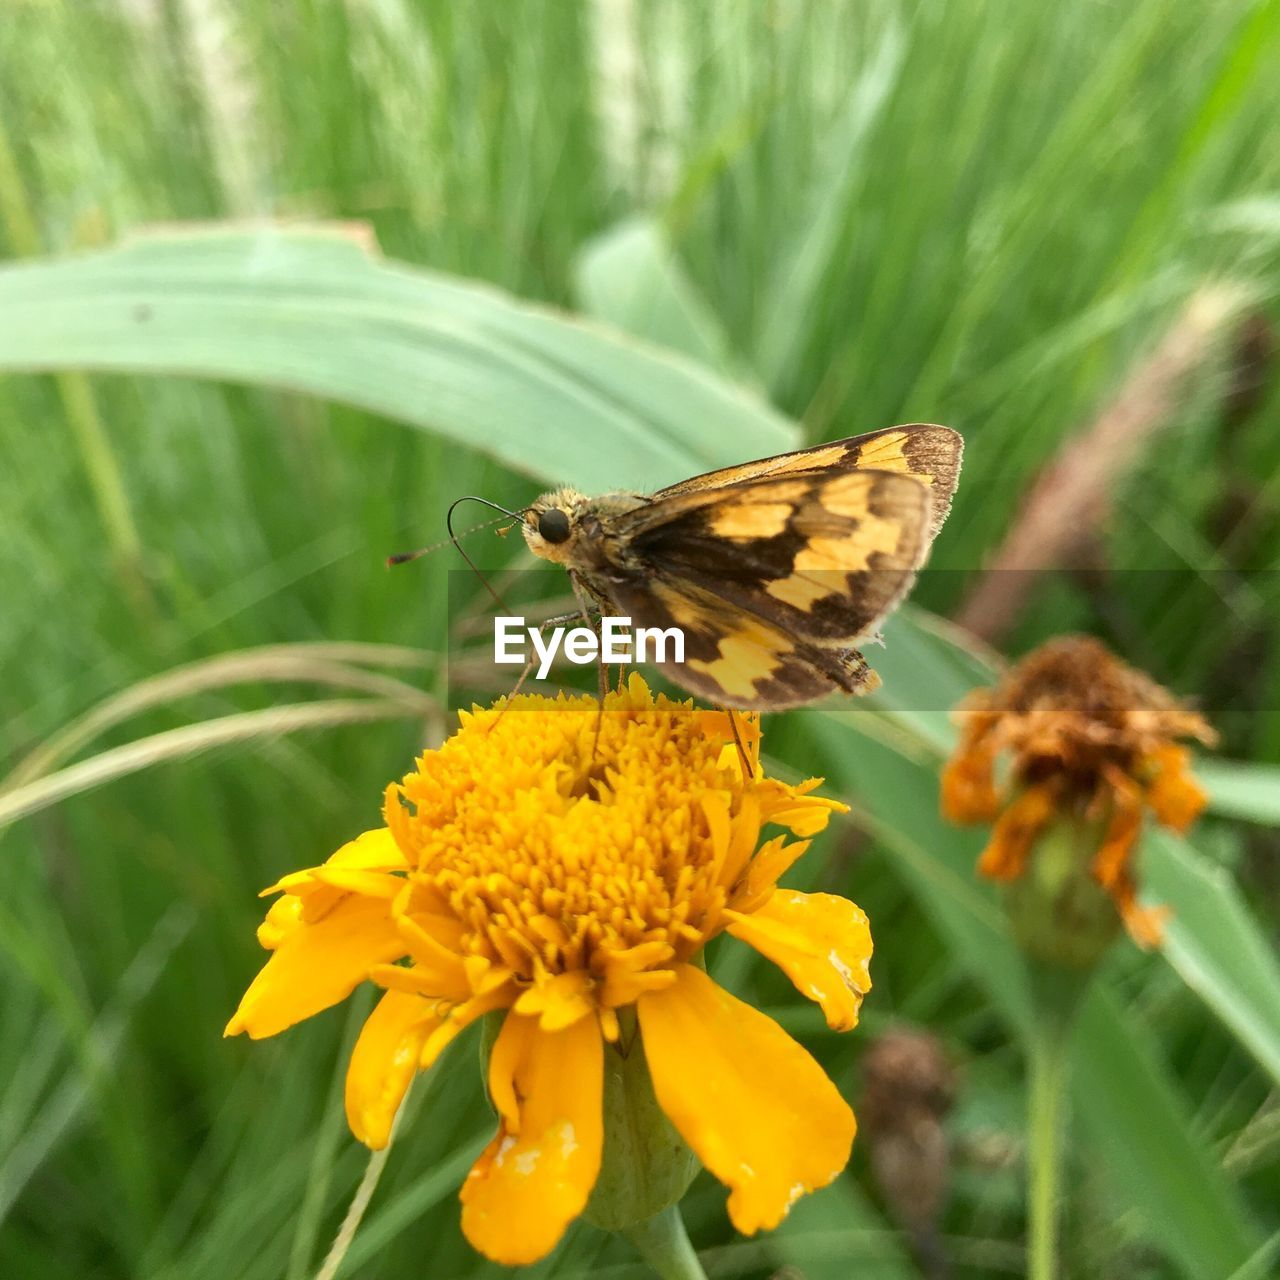 flower, flowering plant, animal wildlife, animal, animal themes, plant, invertebrate, insect, animals in the wild, one animal, beauty in nature, fragility, vulnerability, animal wing, freshness, close-up, growth, butterfly - insect, petal, flower head, no people, pollination, outdoors, butterfly